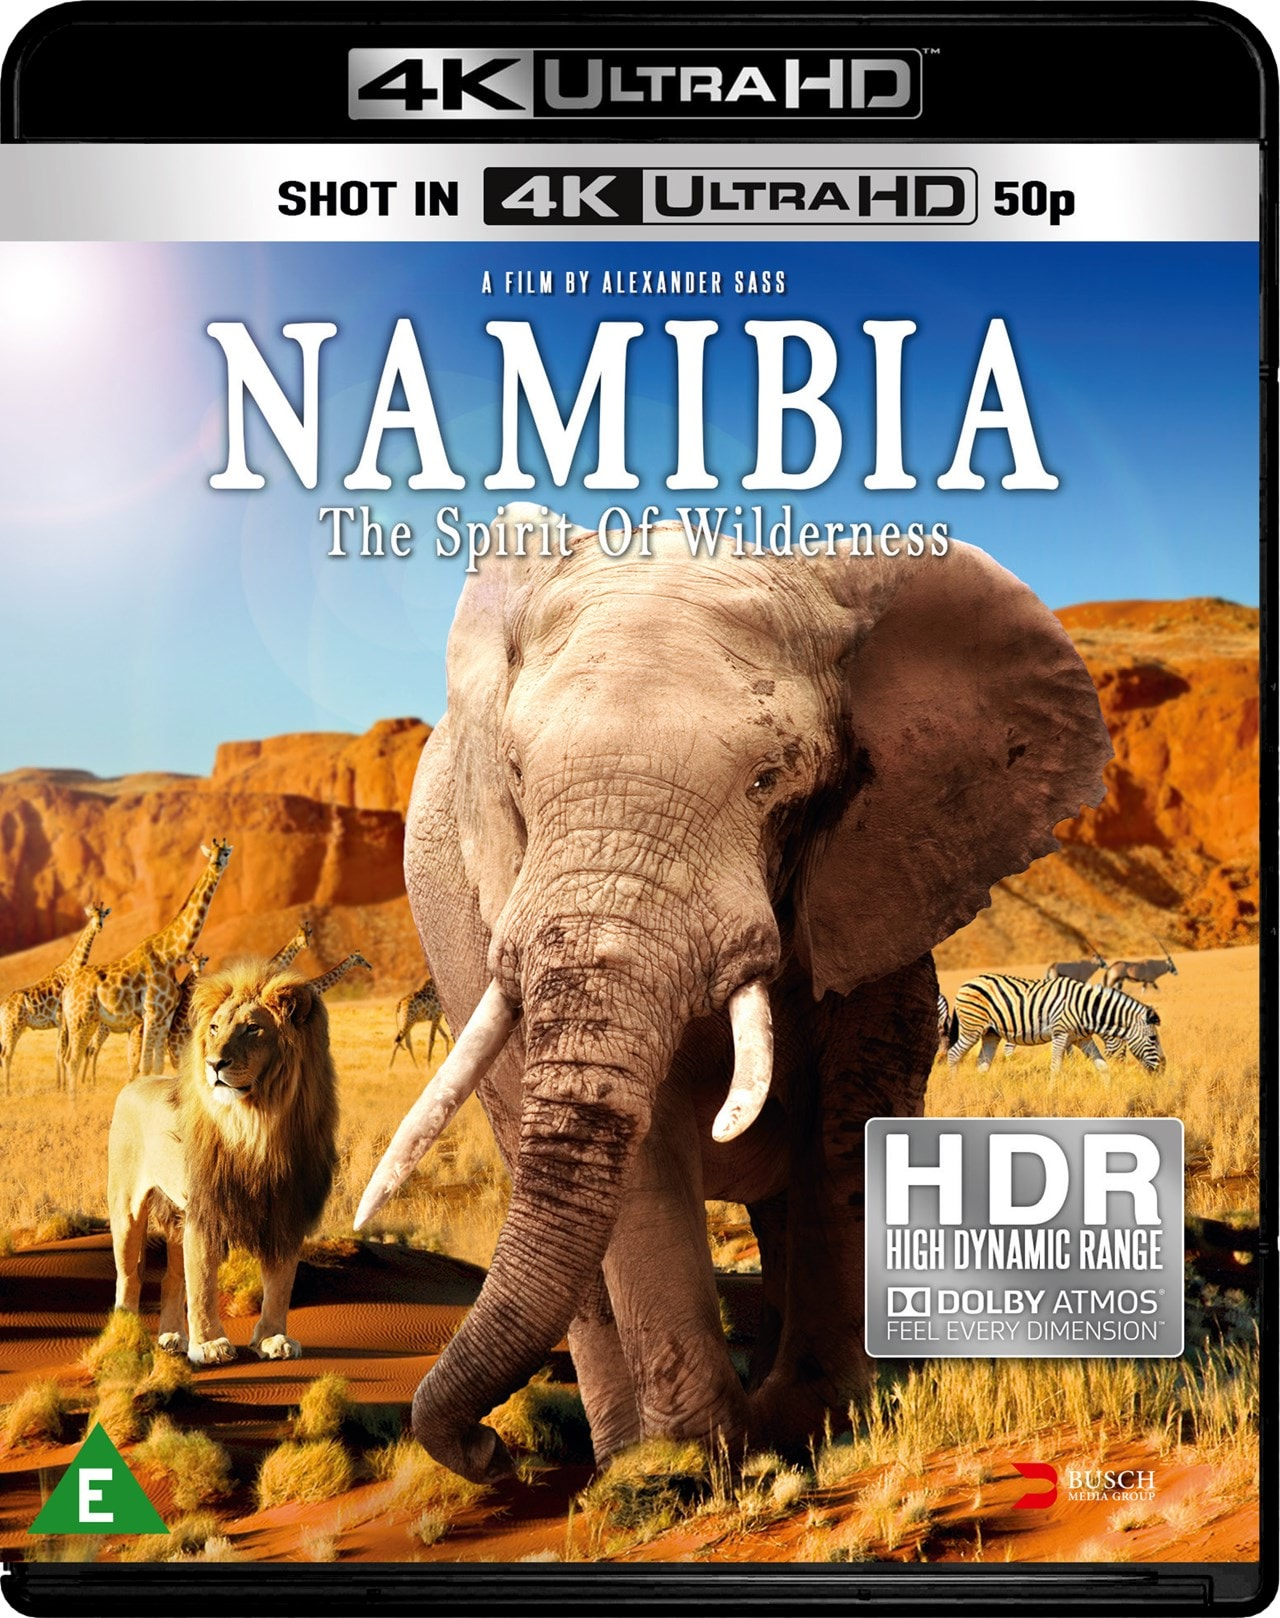 Namibia - The Spirit of Wilderness - 1